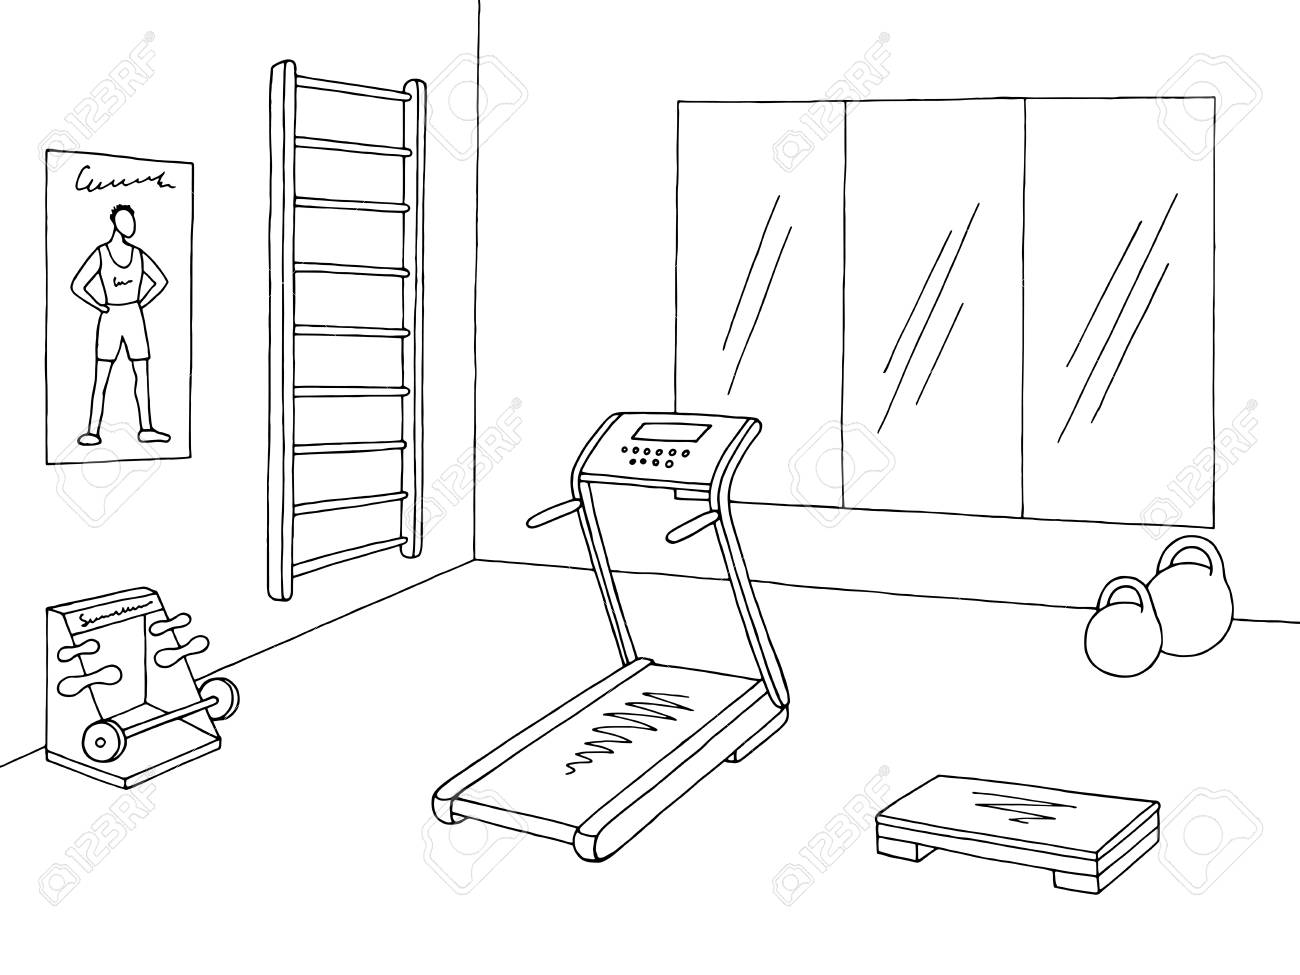 Black and white clipart gymnasium clip art black and white Gym clipart black and white 5 » Clipart Station clip art black and white